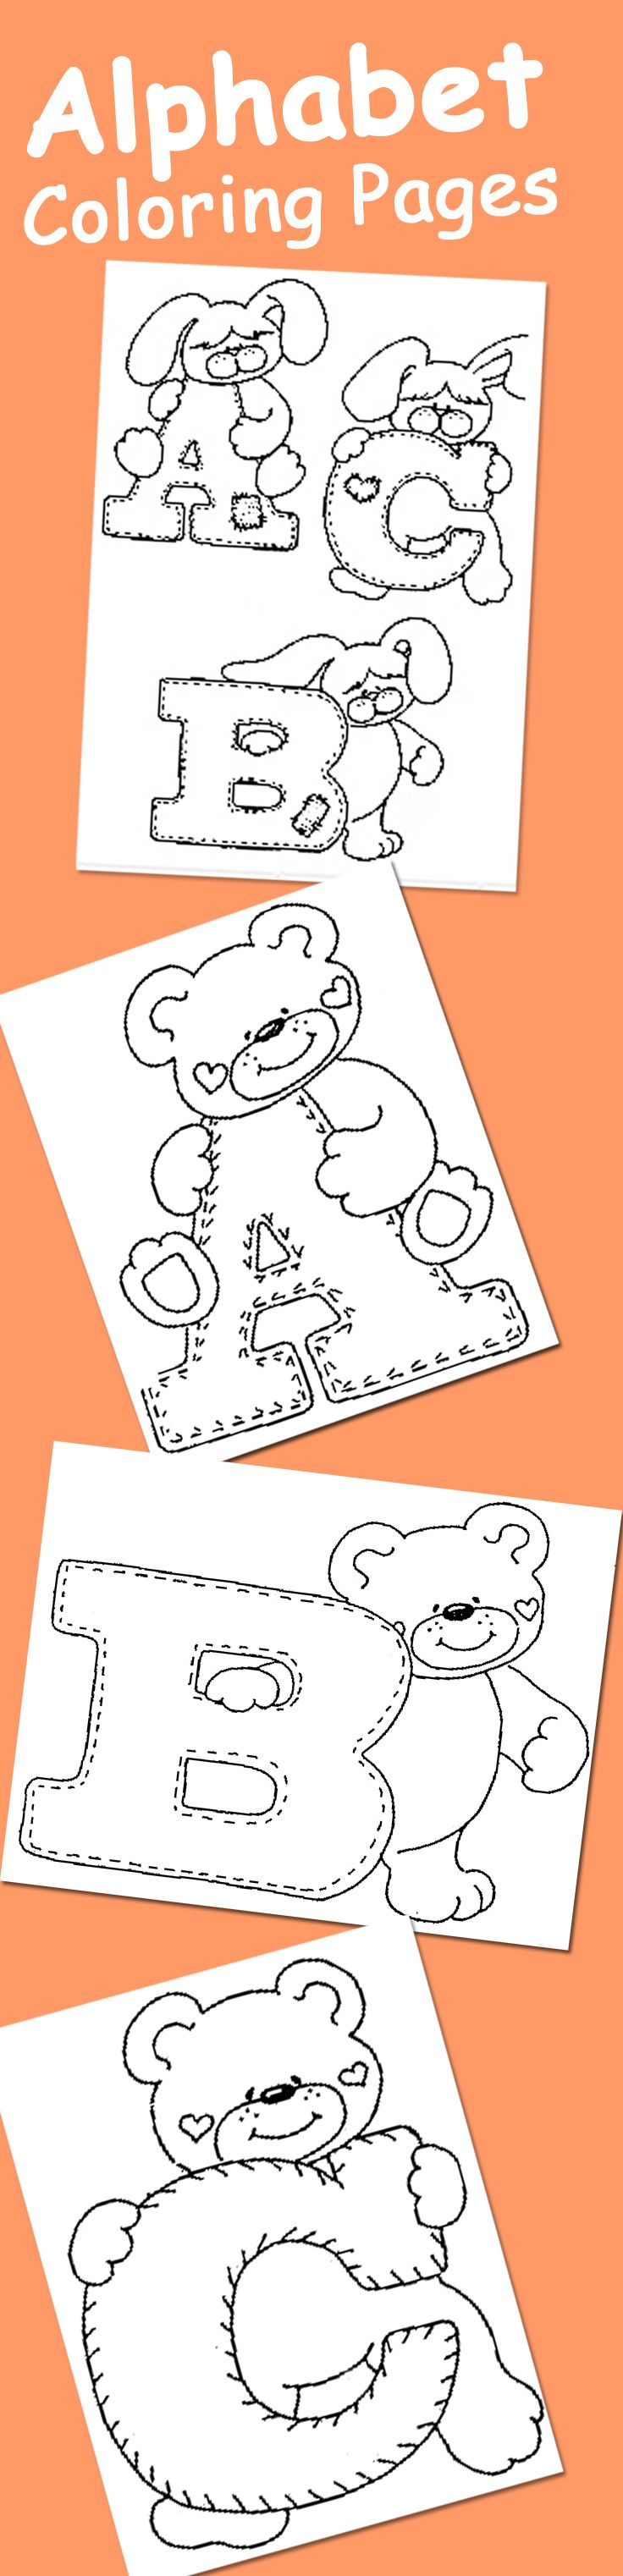 50 alphabet coloring pages your toddler will love kids learning